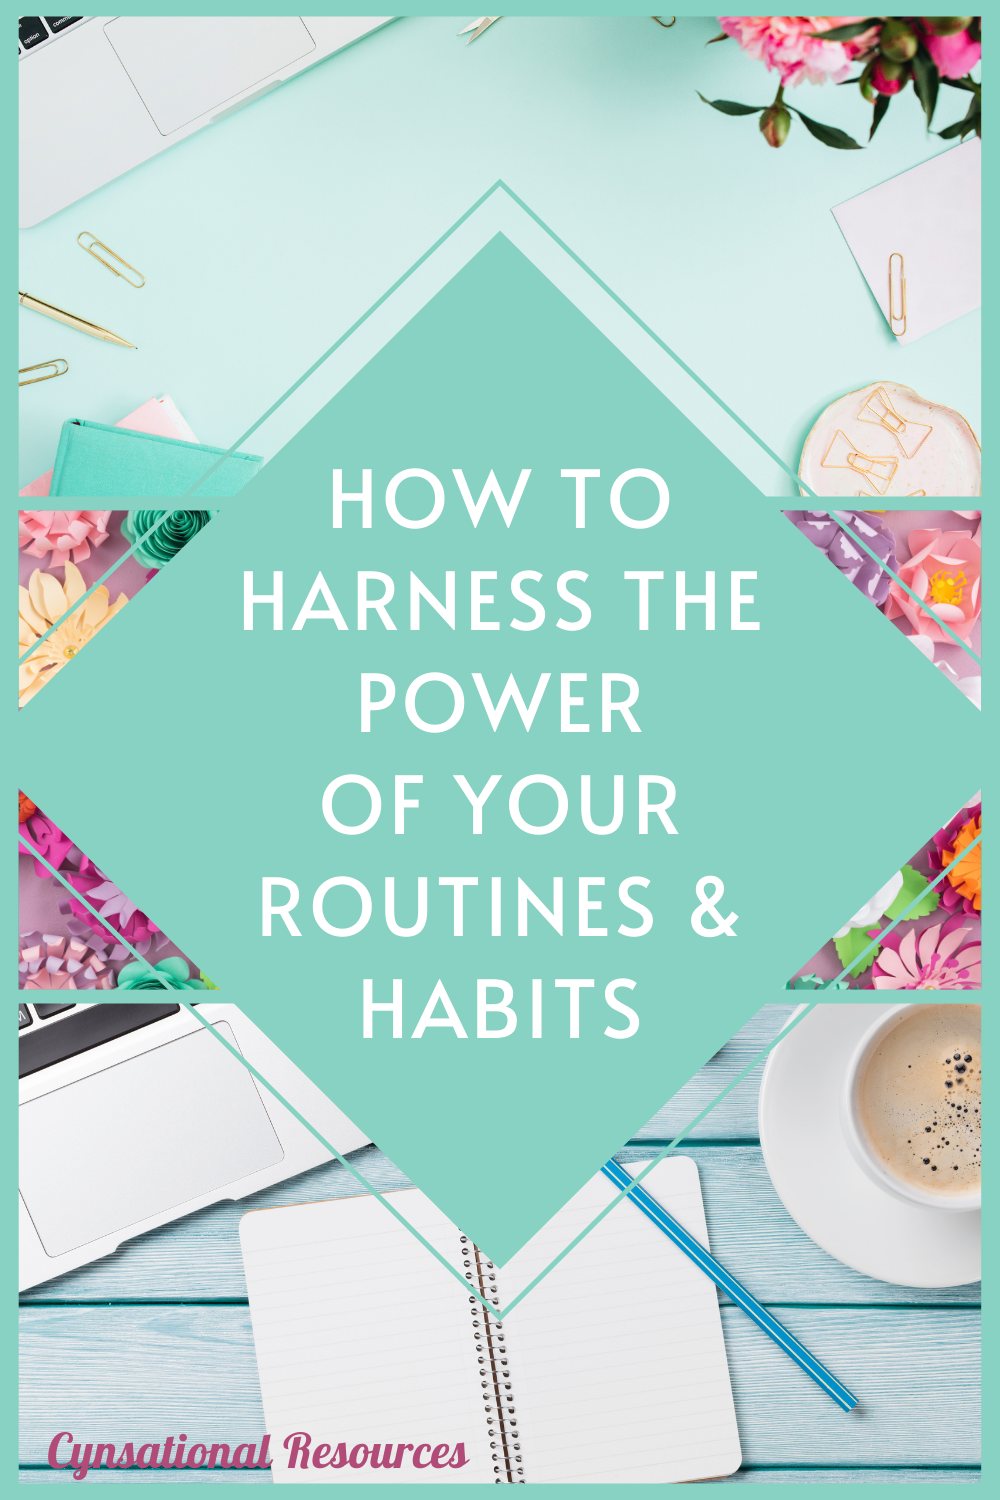 How to Harness Habits